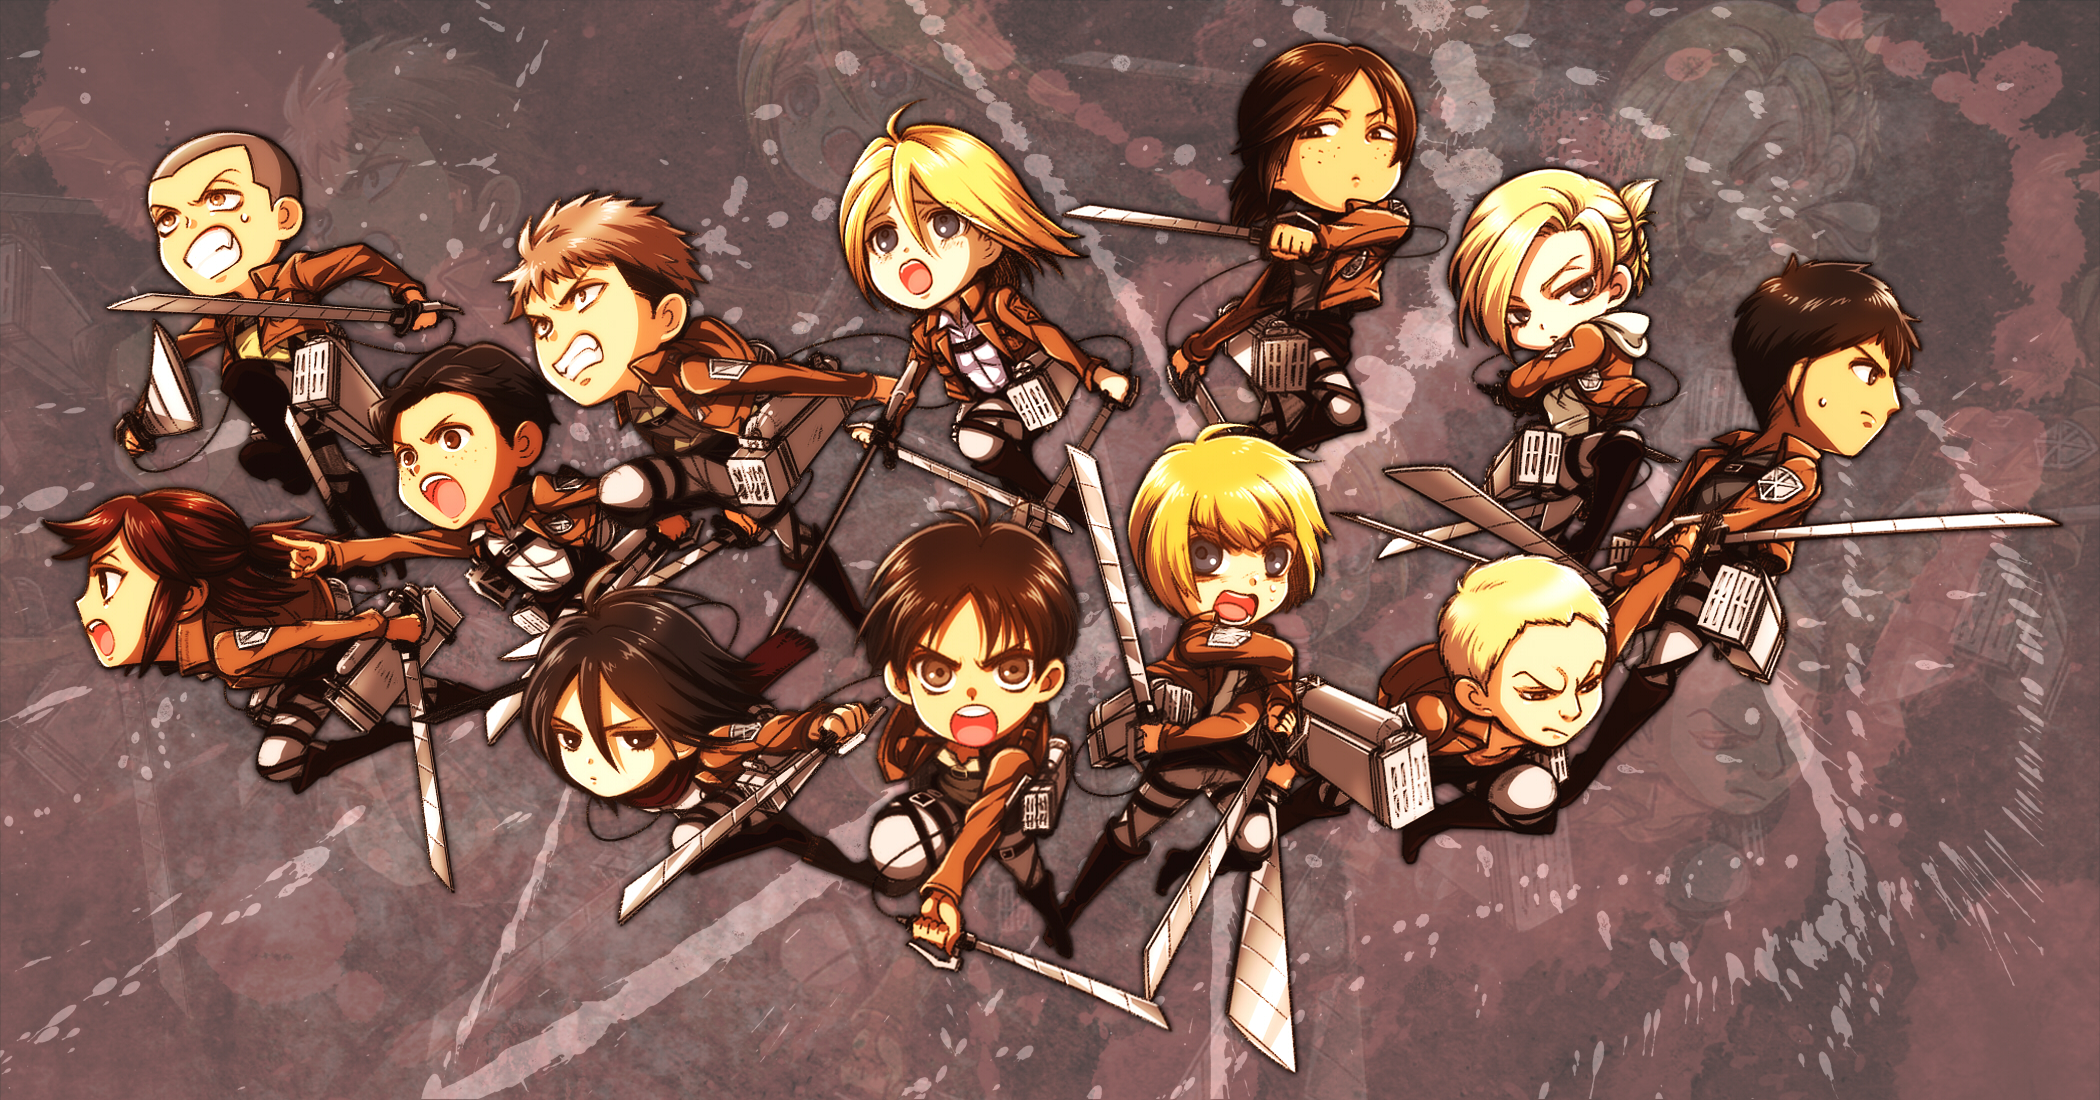 Attack On Titan Wallpaper on newwallpaperdownloadcom 2100x1100